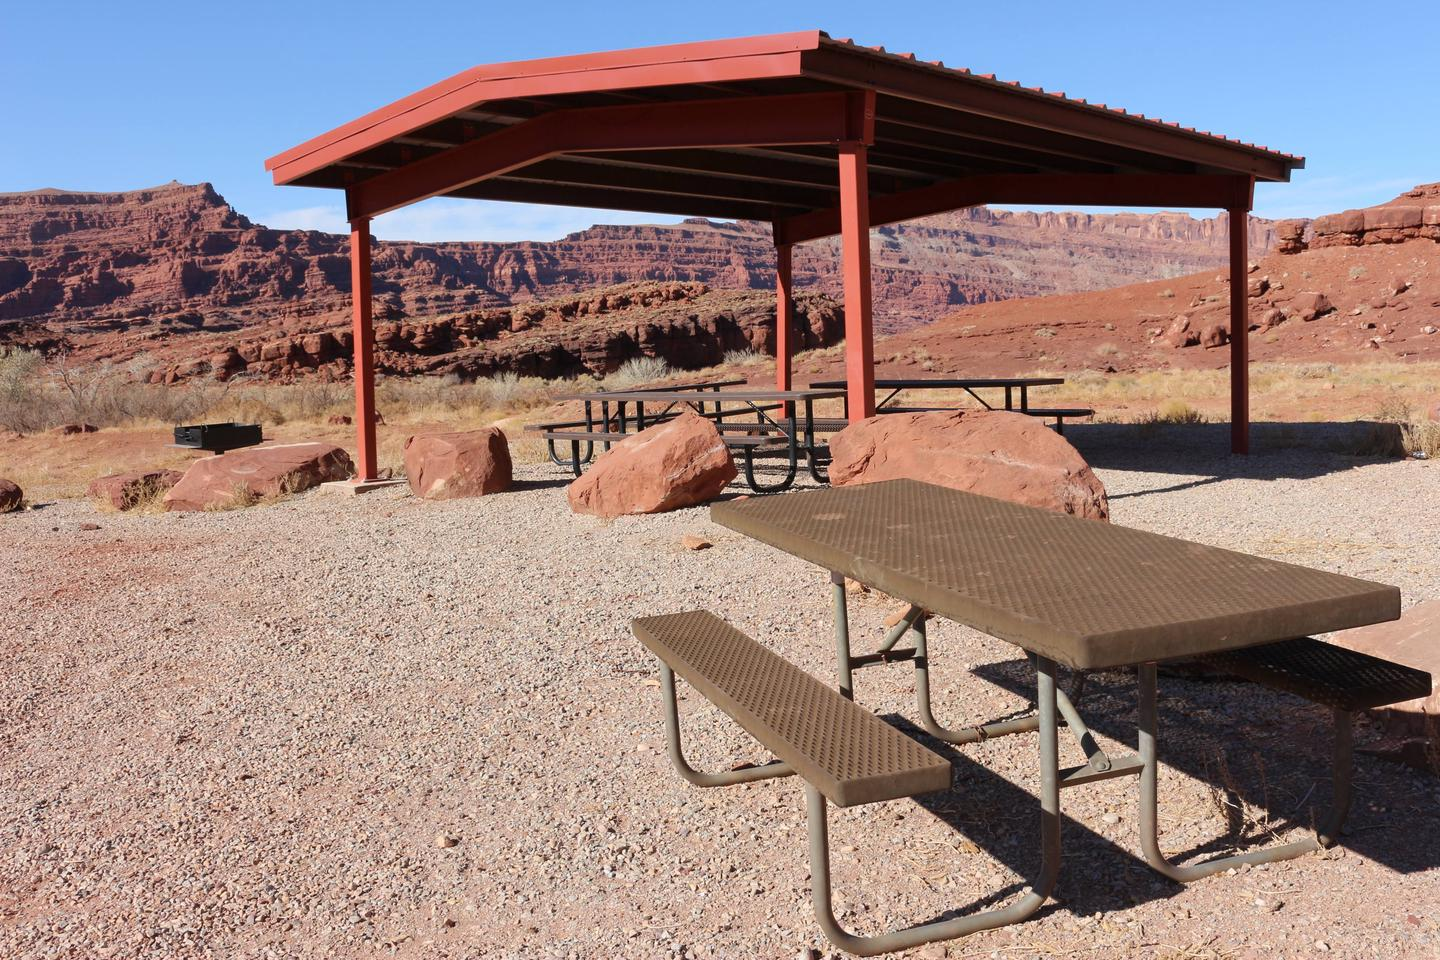 Close up of shade shelter and picnic tables.